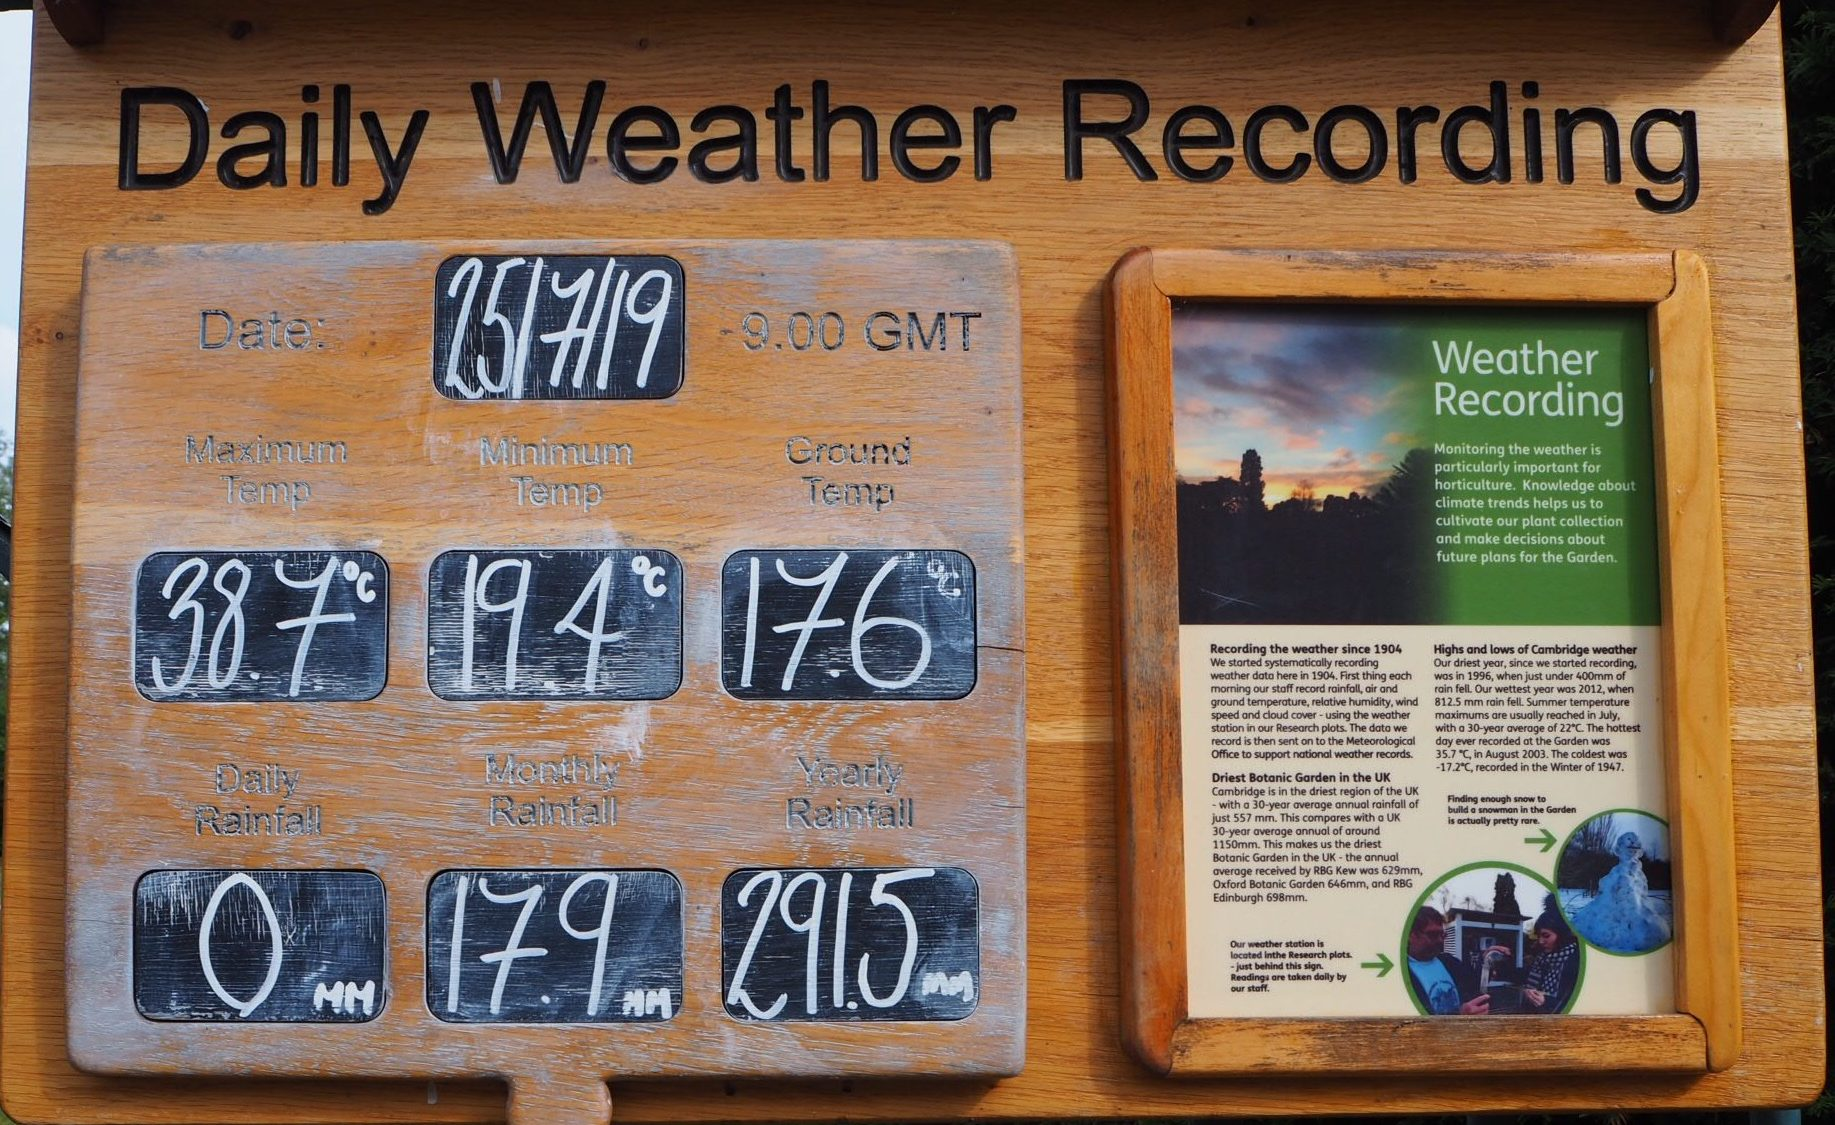 The Weather Board with the hottest day of the year reading (38.7)